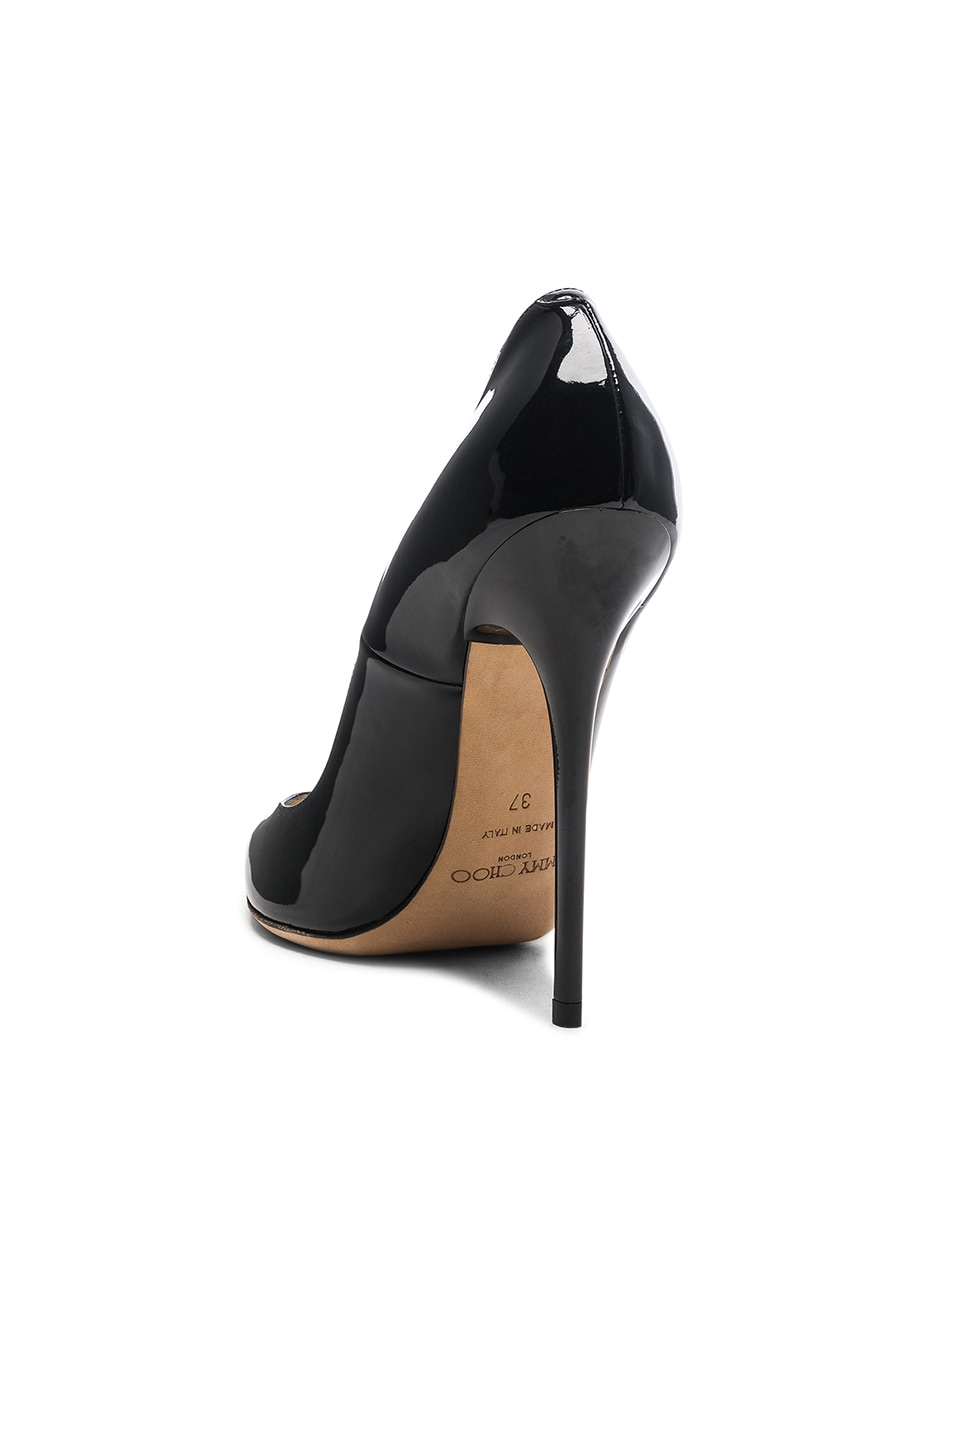 Image 3 of Jimmy Choo Anouk 120 Patent Leather Pump in Black